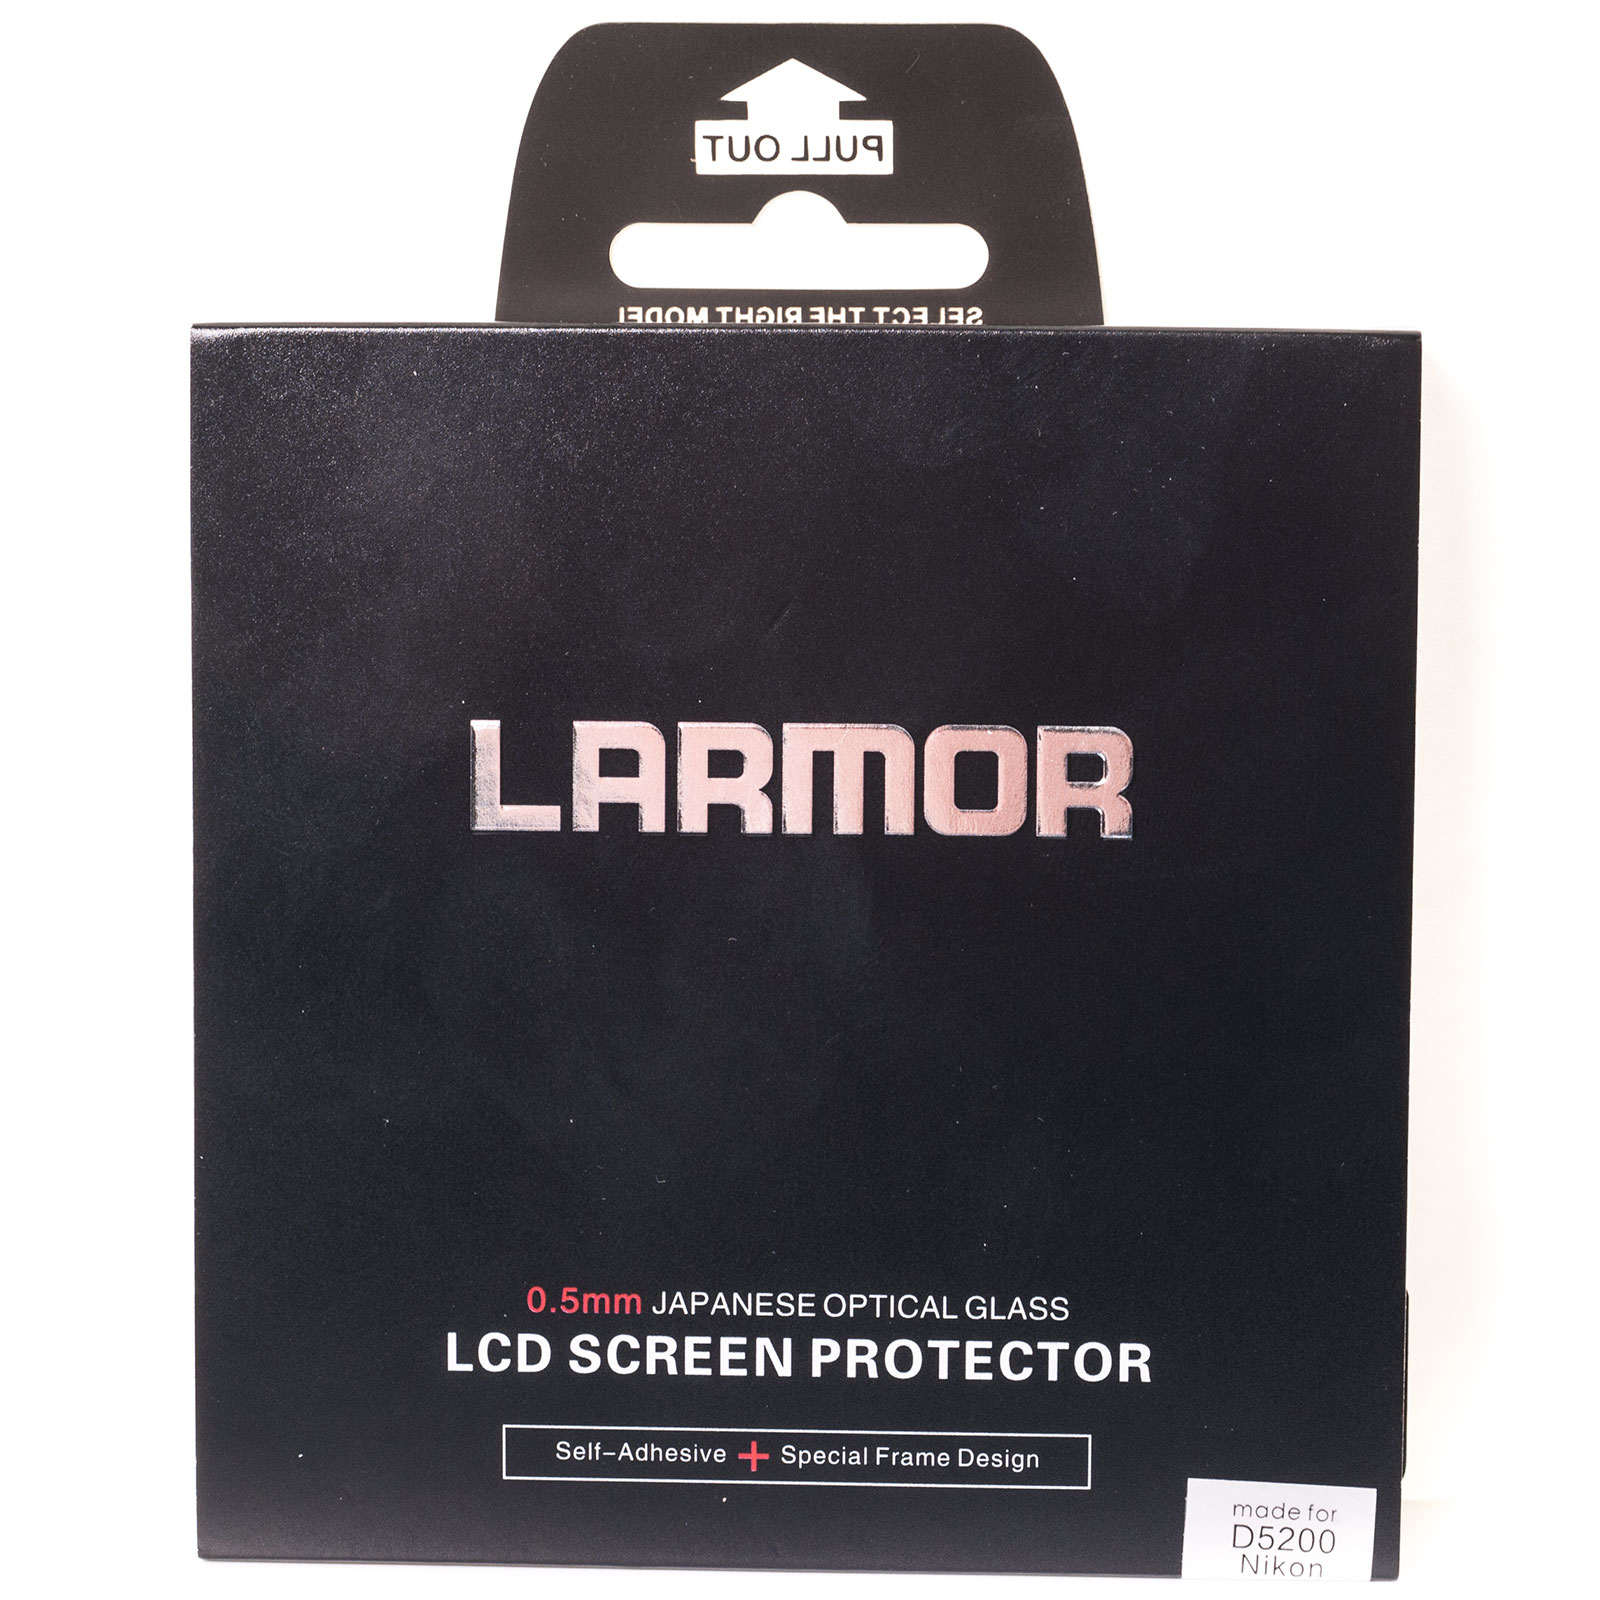 GGS Larmor Glass Screen Protector for Nikon D5200 Camera - Self-Adhesive